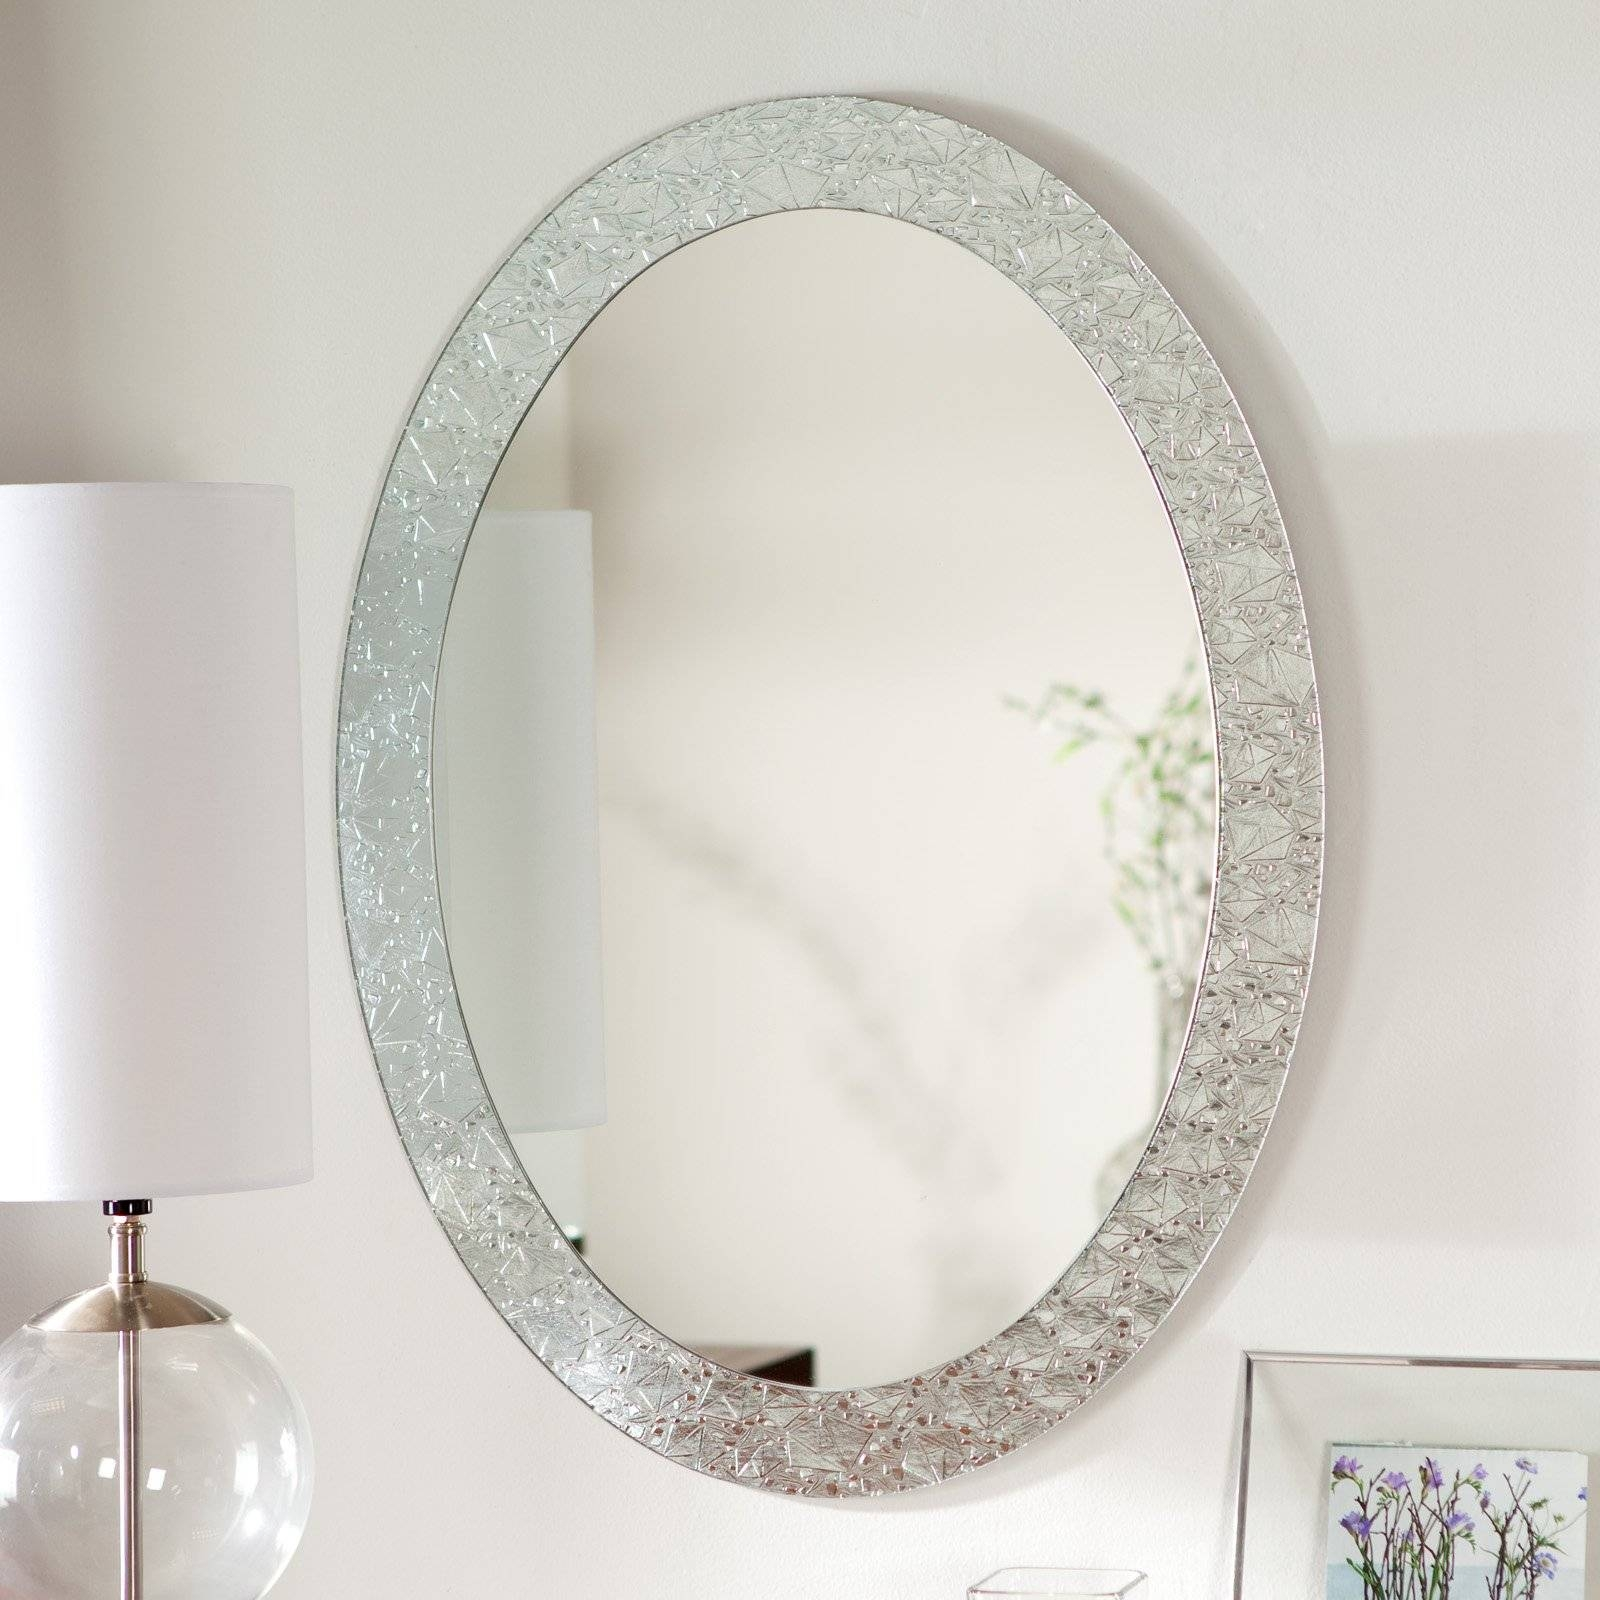 Lovely Oval Bathroom Mirrors In House Design Plan With 1000 Ideas throughout Pretty Mirrors For Walls (Image 13 of 15)